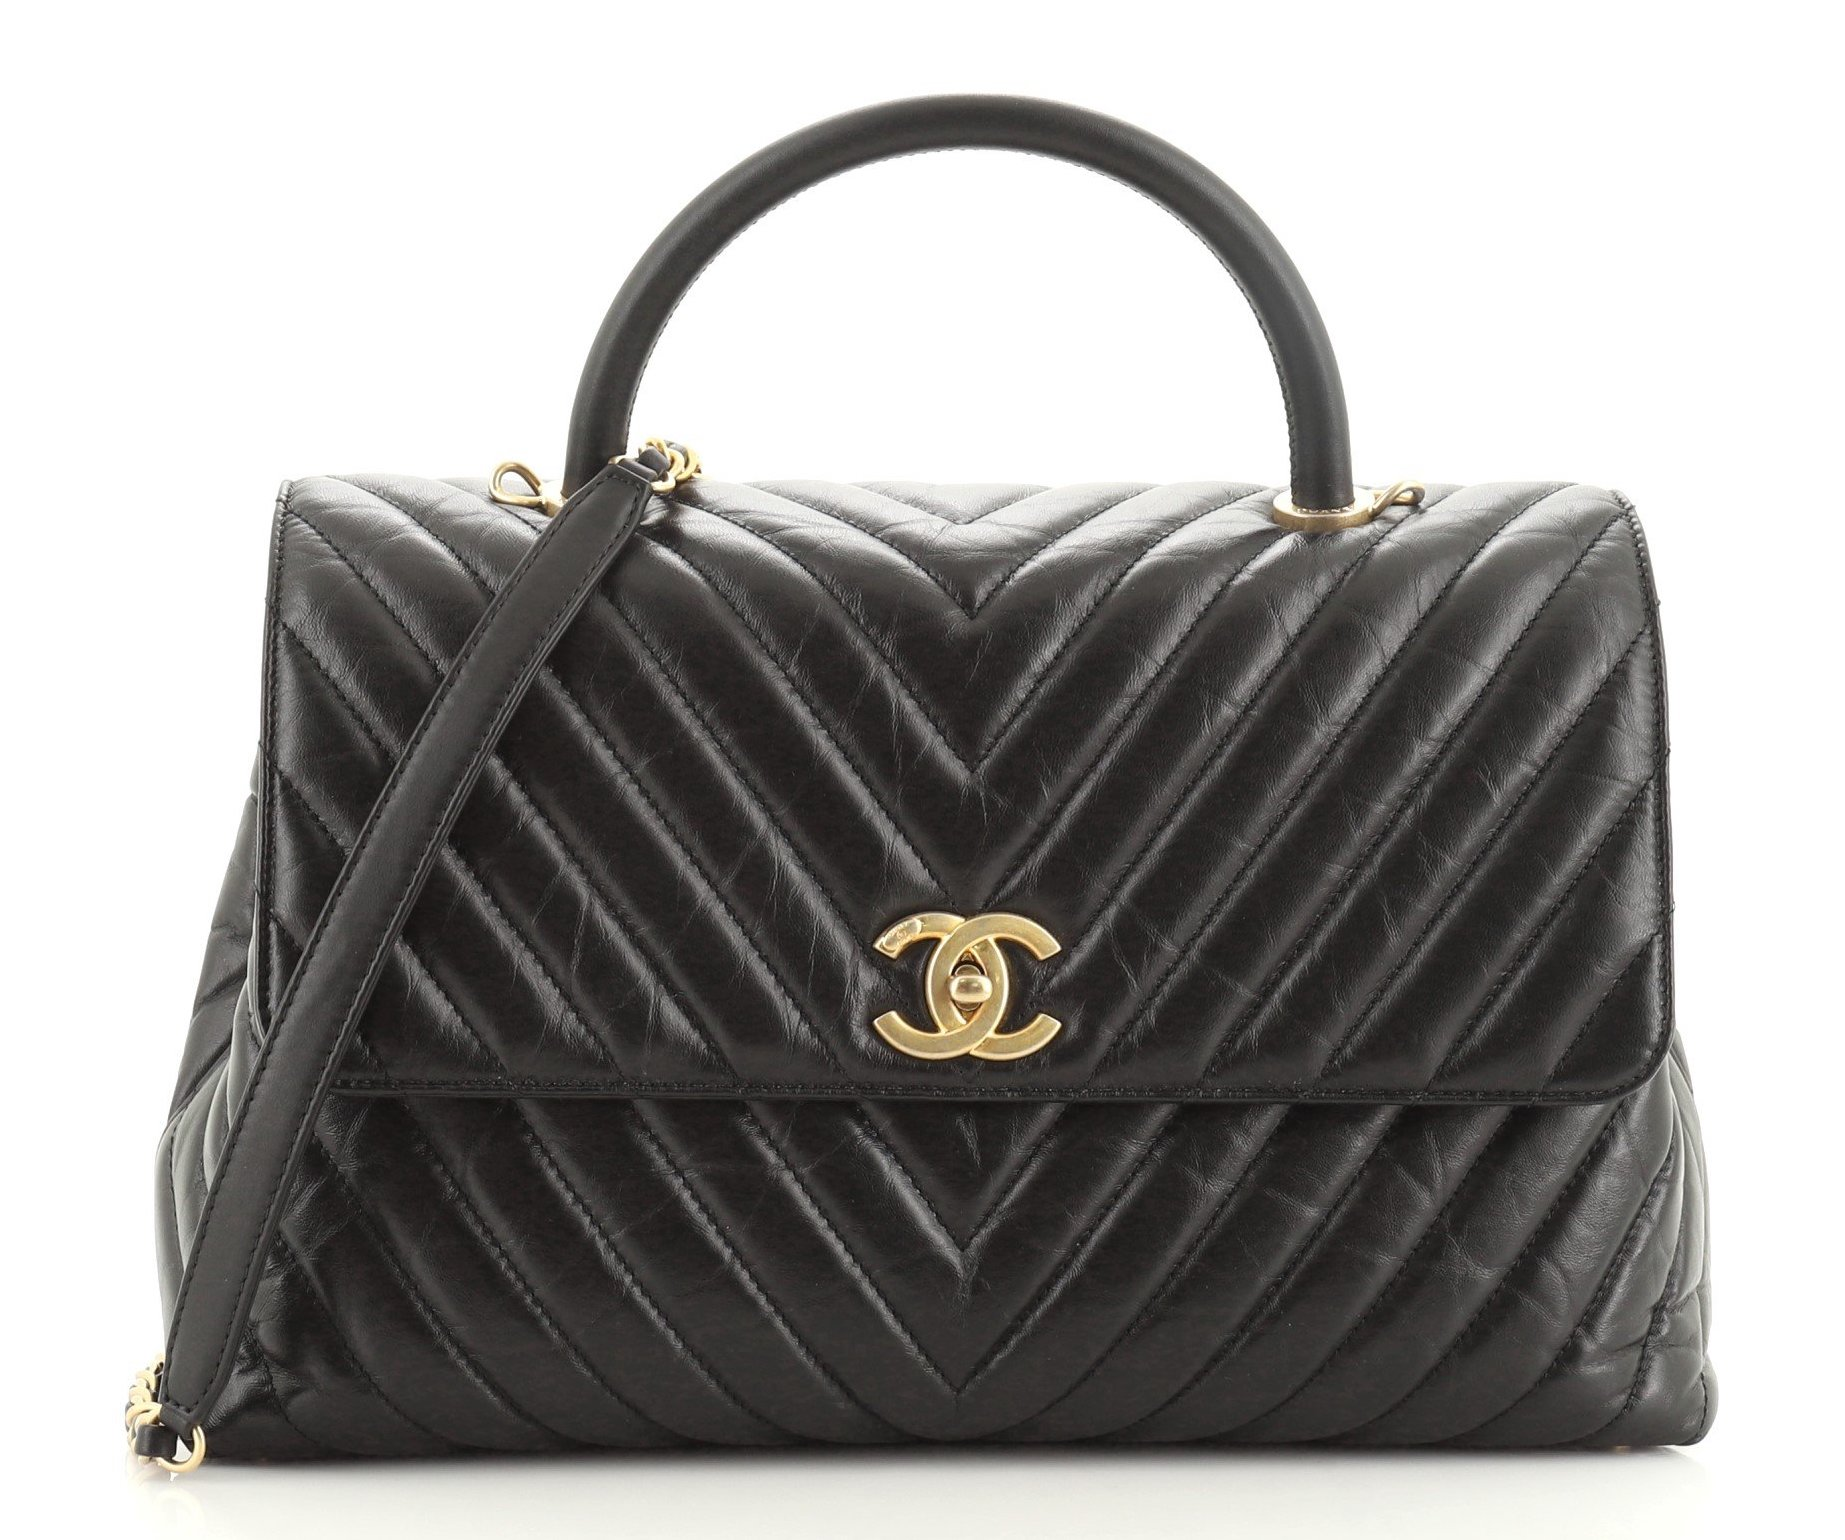 Chanel Coco Top Handle Bag Chevron Calfskin Large